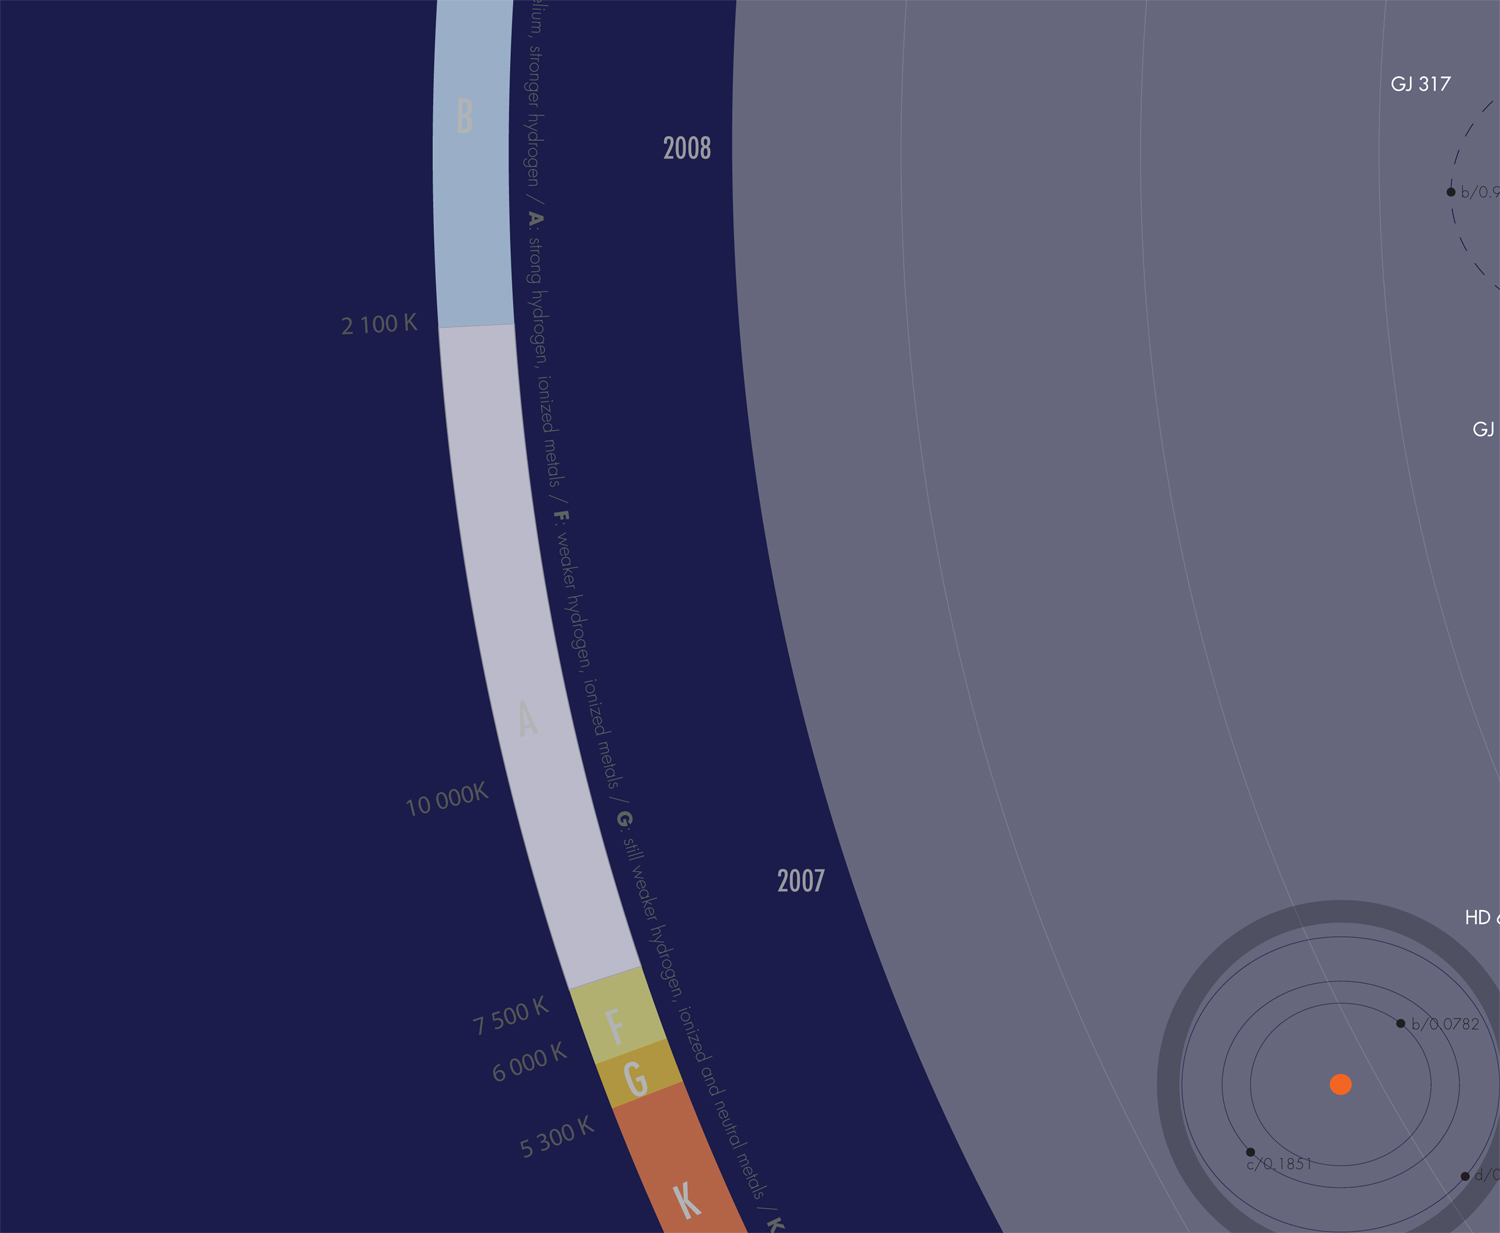 Exoplanets_ProjectPage_5.jpg